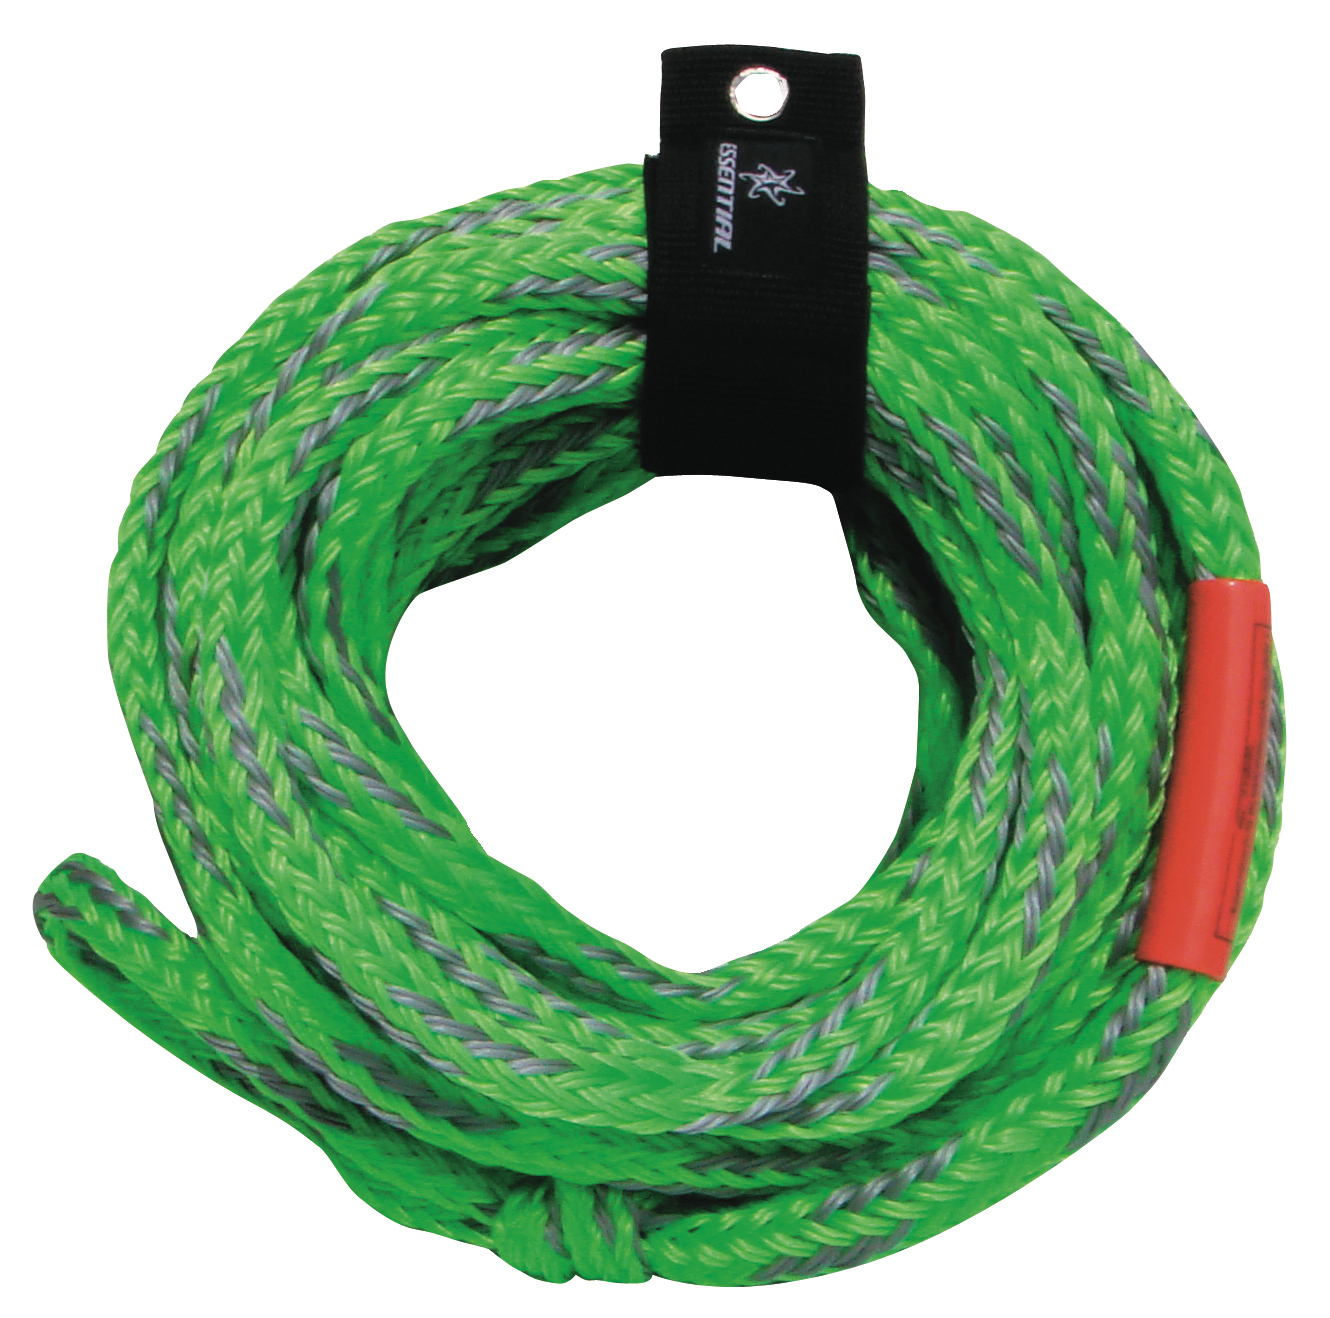 Essential Pro Towables Rope, XHD 1-3 Riders Ski Tube Rope Essential